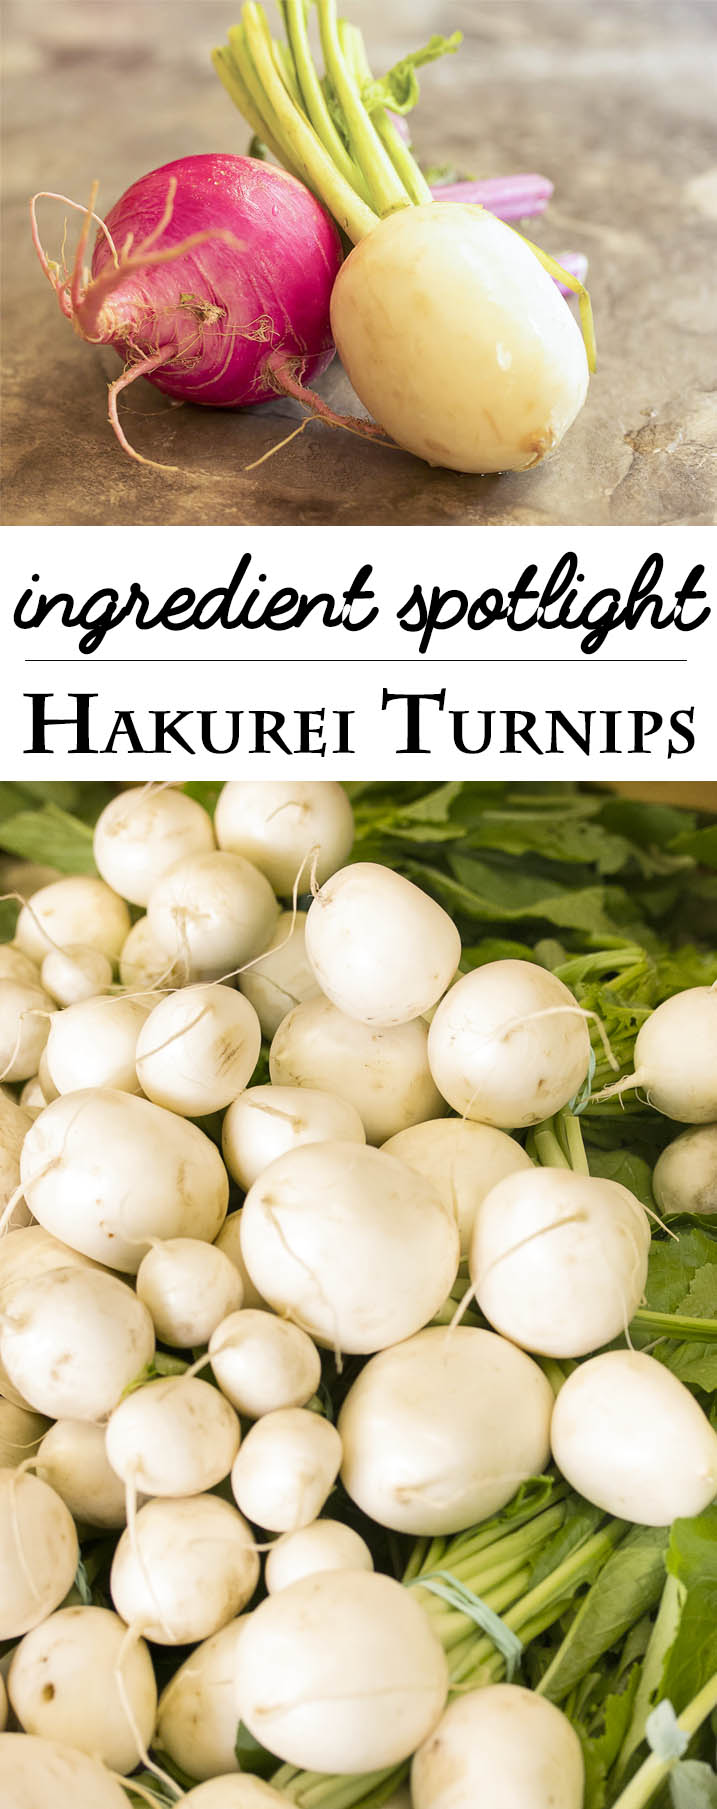 Ingredient Spotlight: Hakurei Turnips - Turnips are not just for cooler weather. Mild, even sweet Hakurei turnips are wonderful in salads, simple gratins, sliced into sandwiches, and more! | justalittlebitofbacon.com